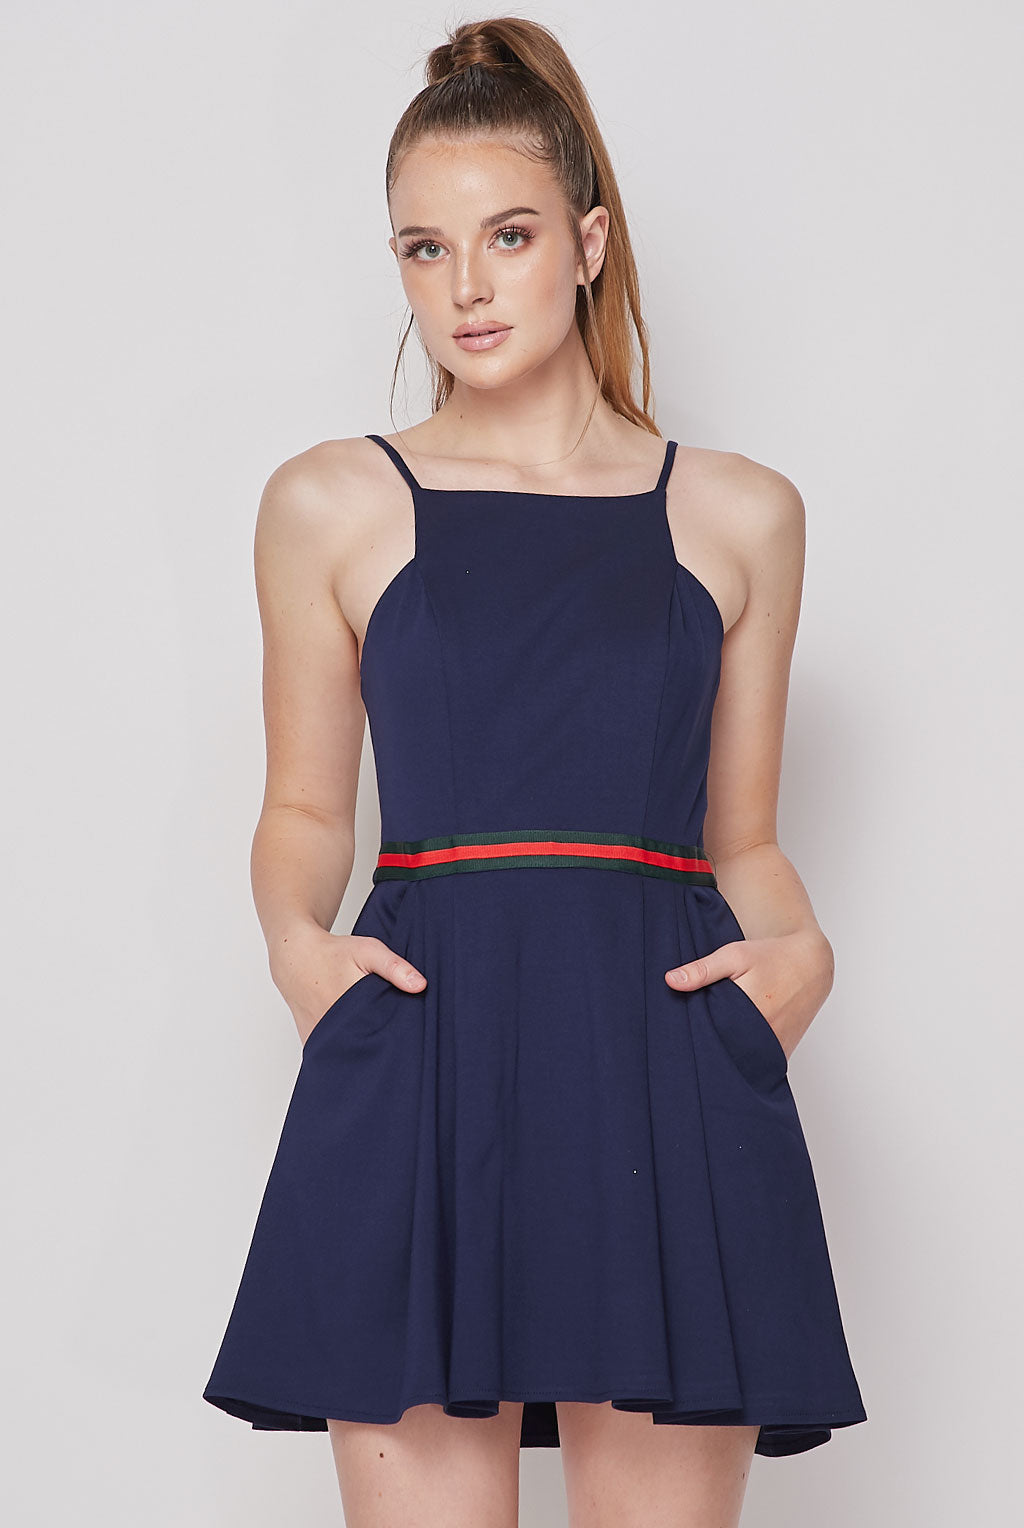 Teeze Me | Halter Top Skirt Pocket Fit And Flare Dress | Navy